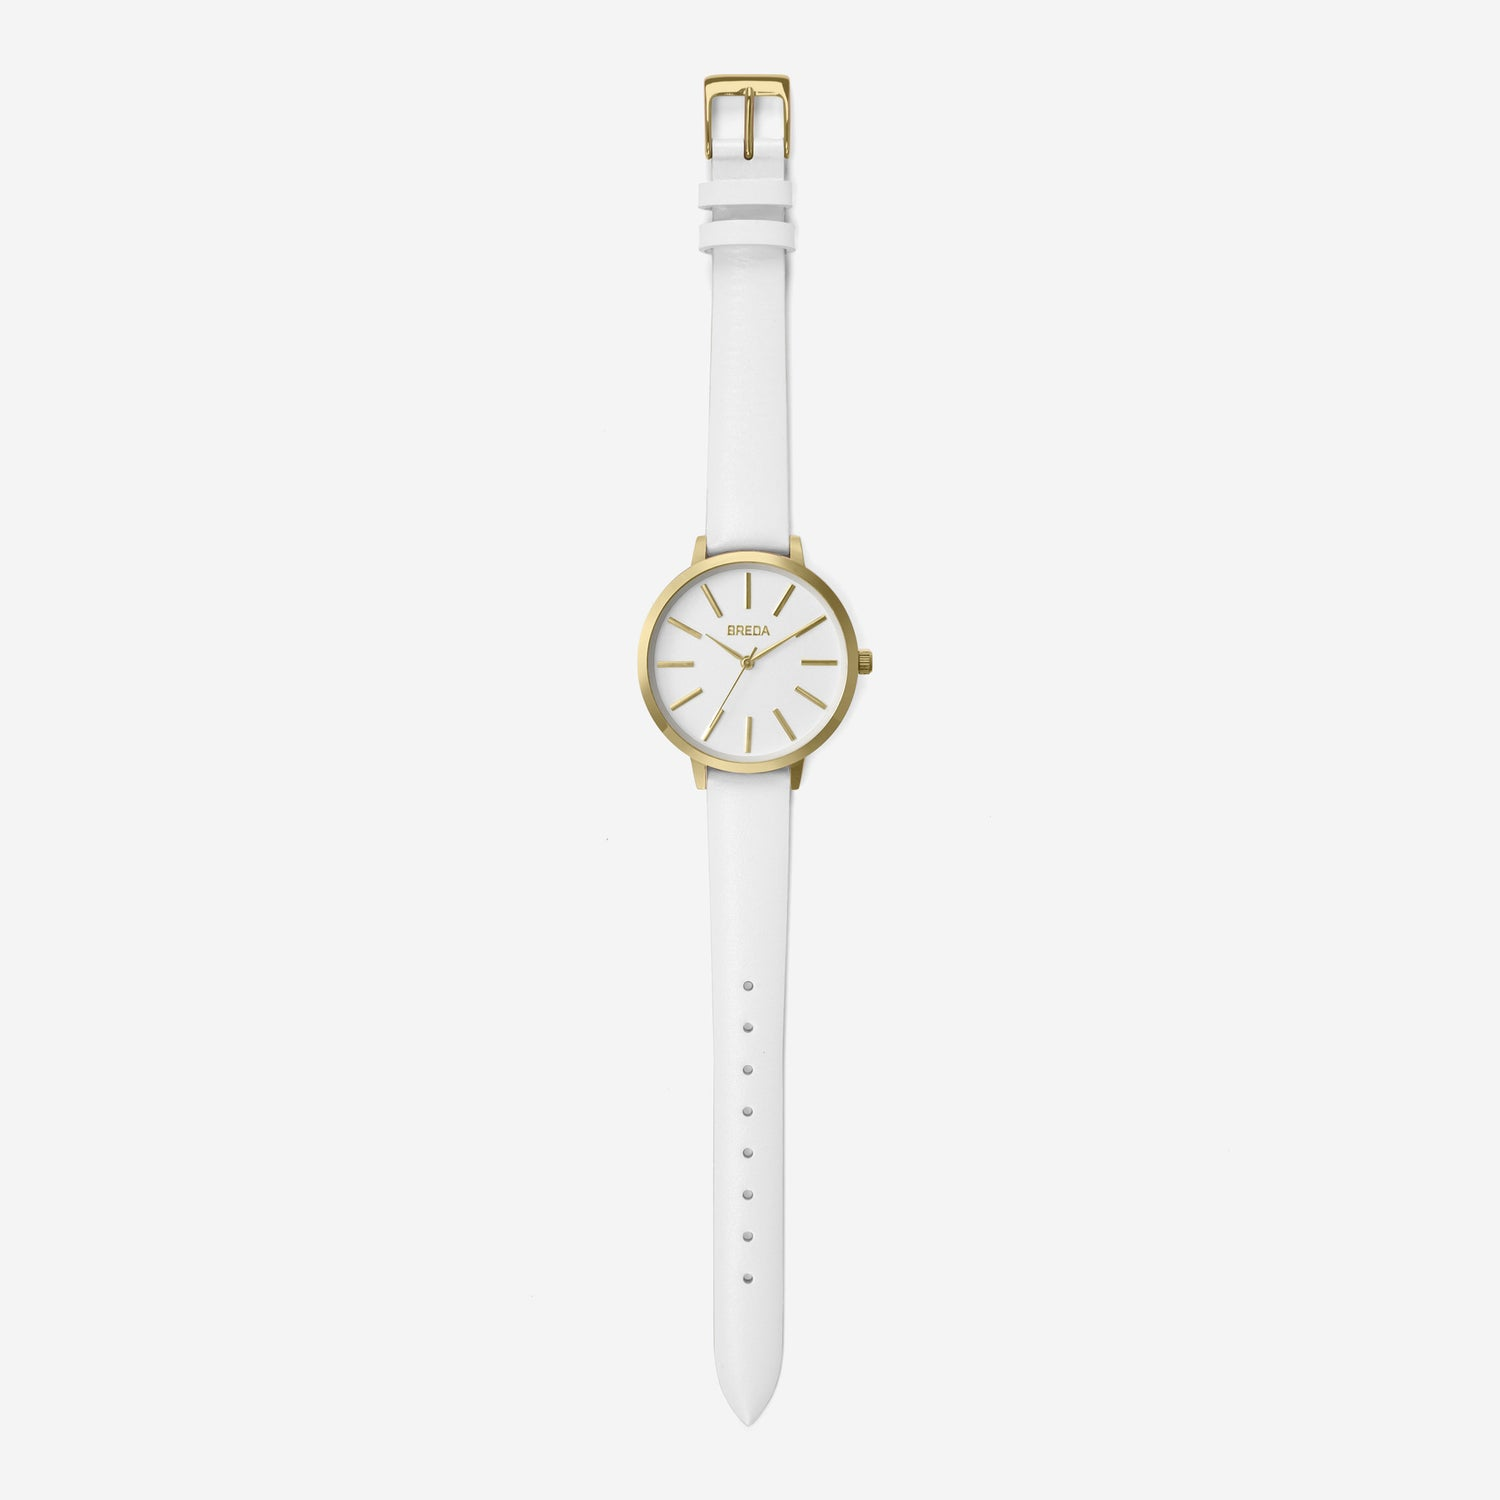 breda-joule-1722c-gold-white-watch-long